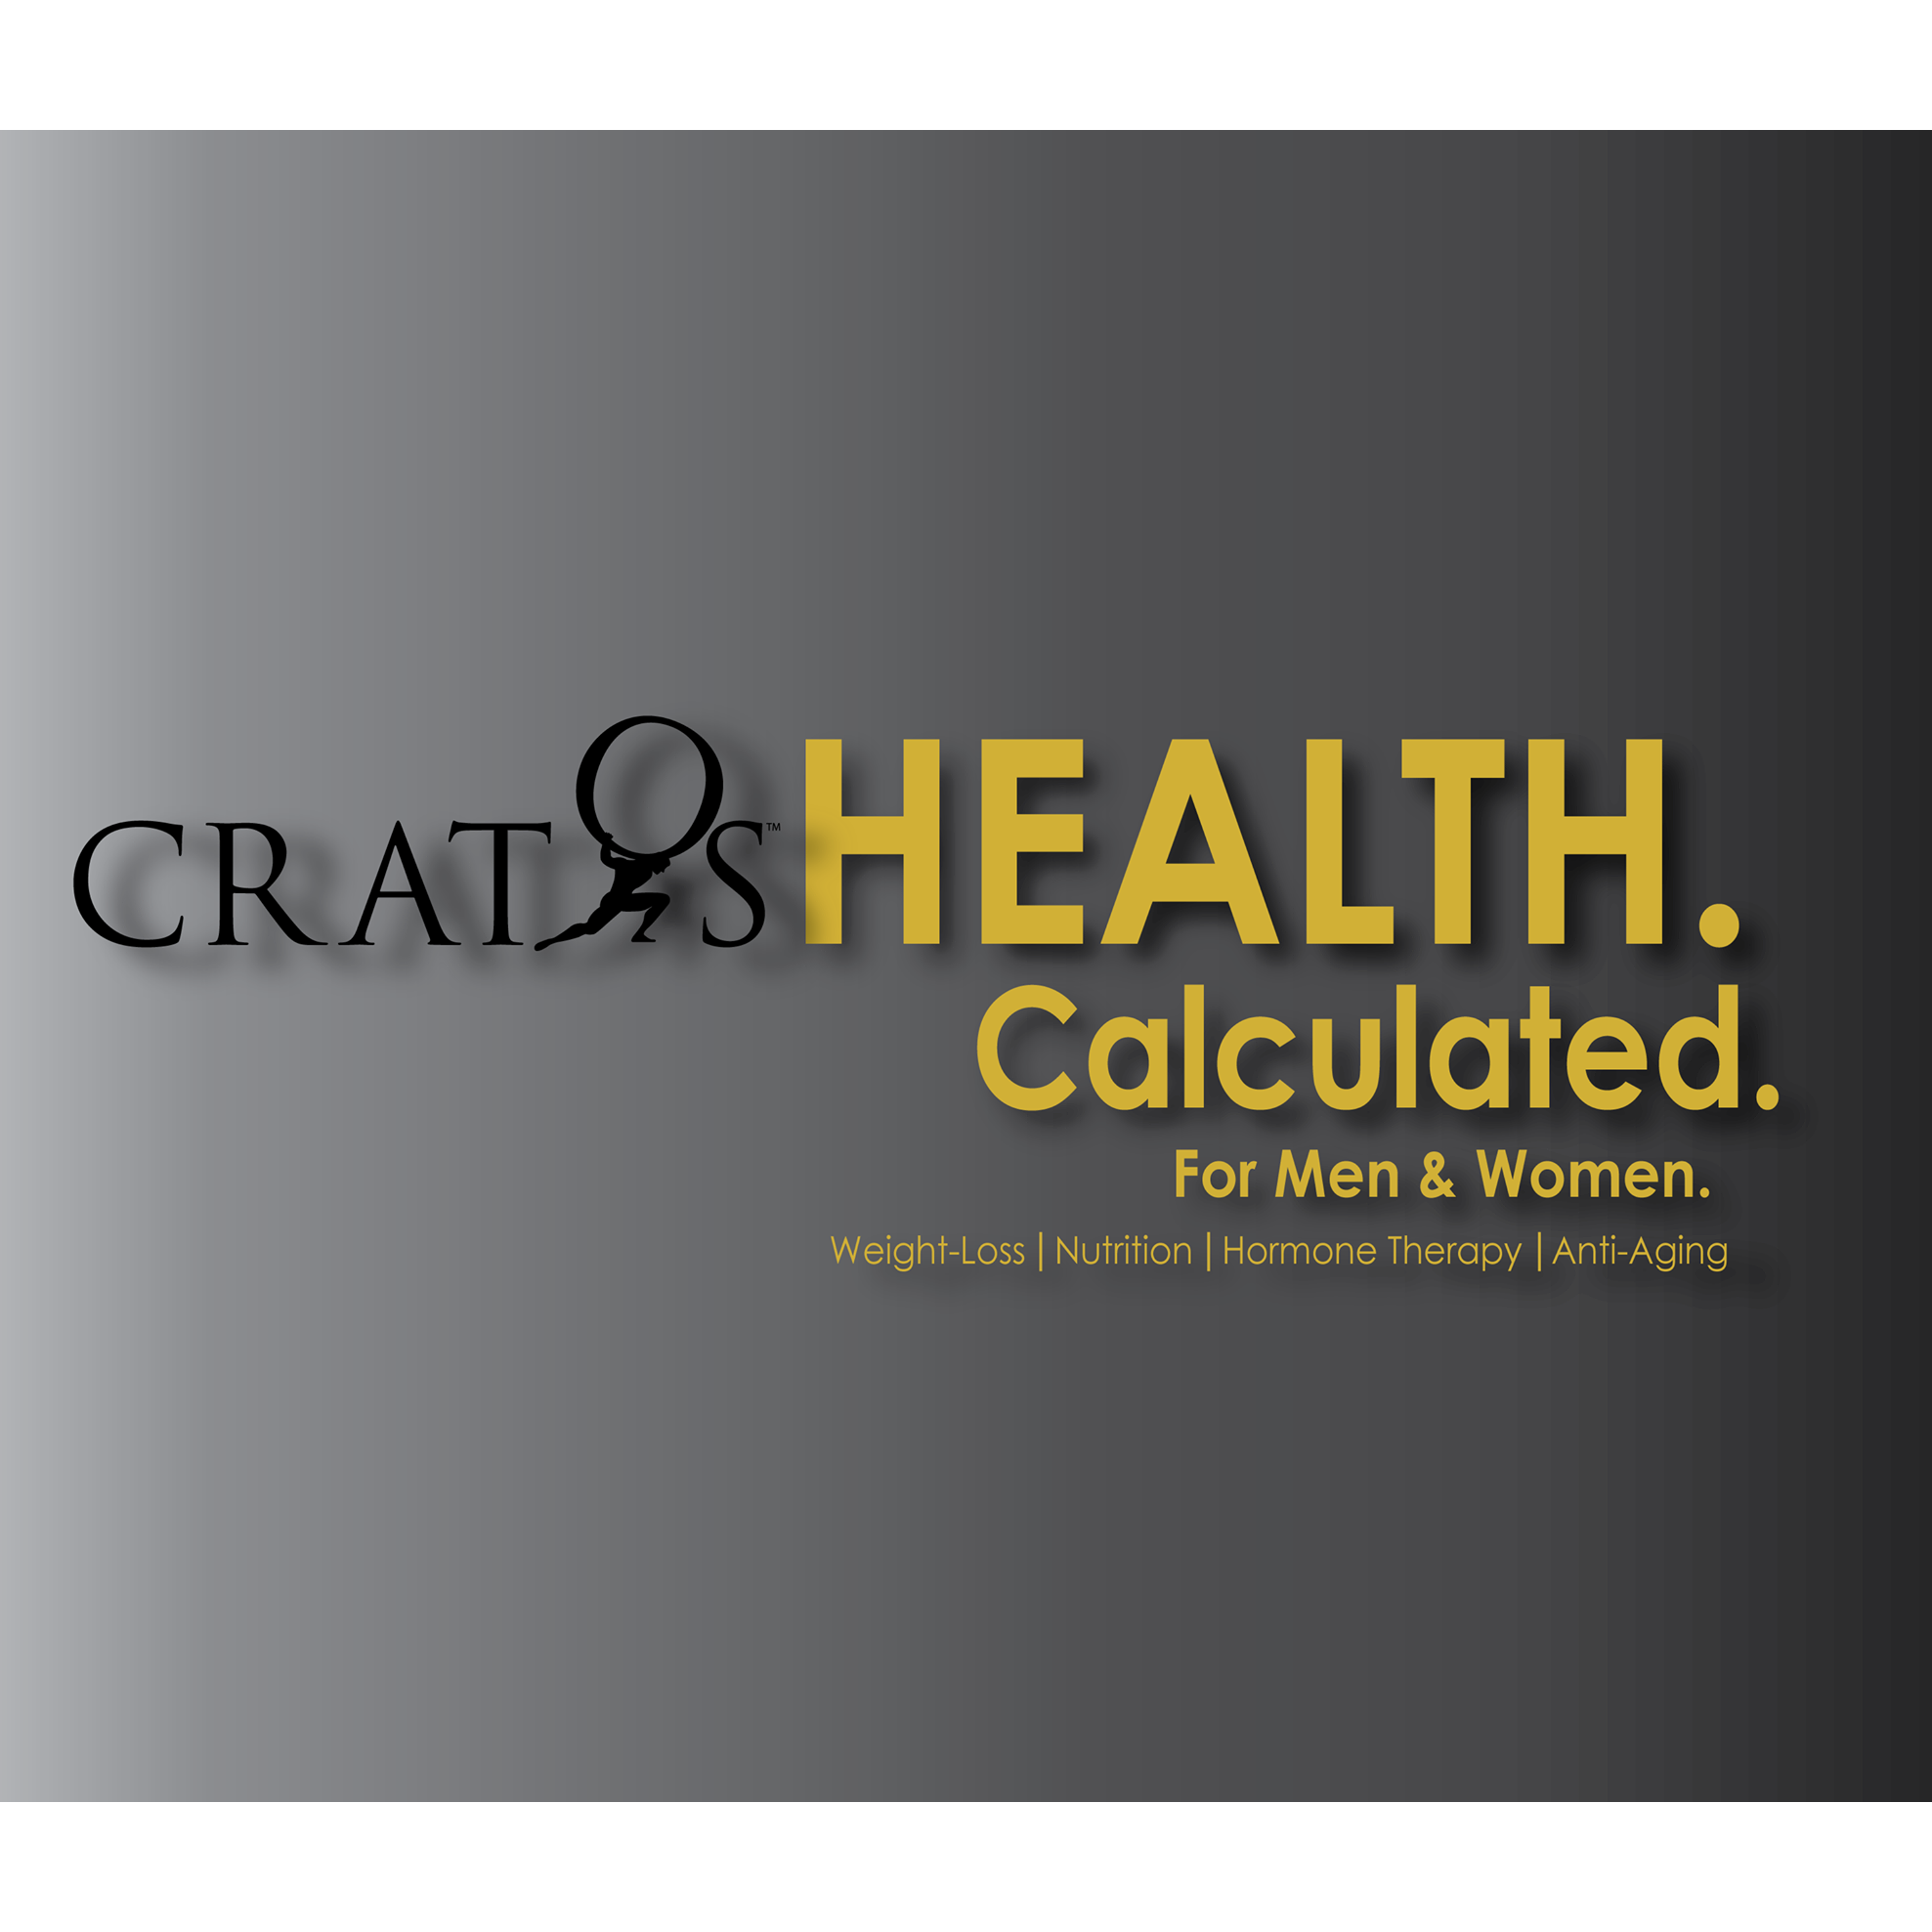 Cratos Health Calculated - Southgate